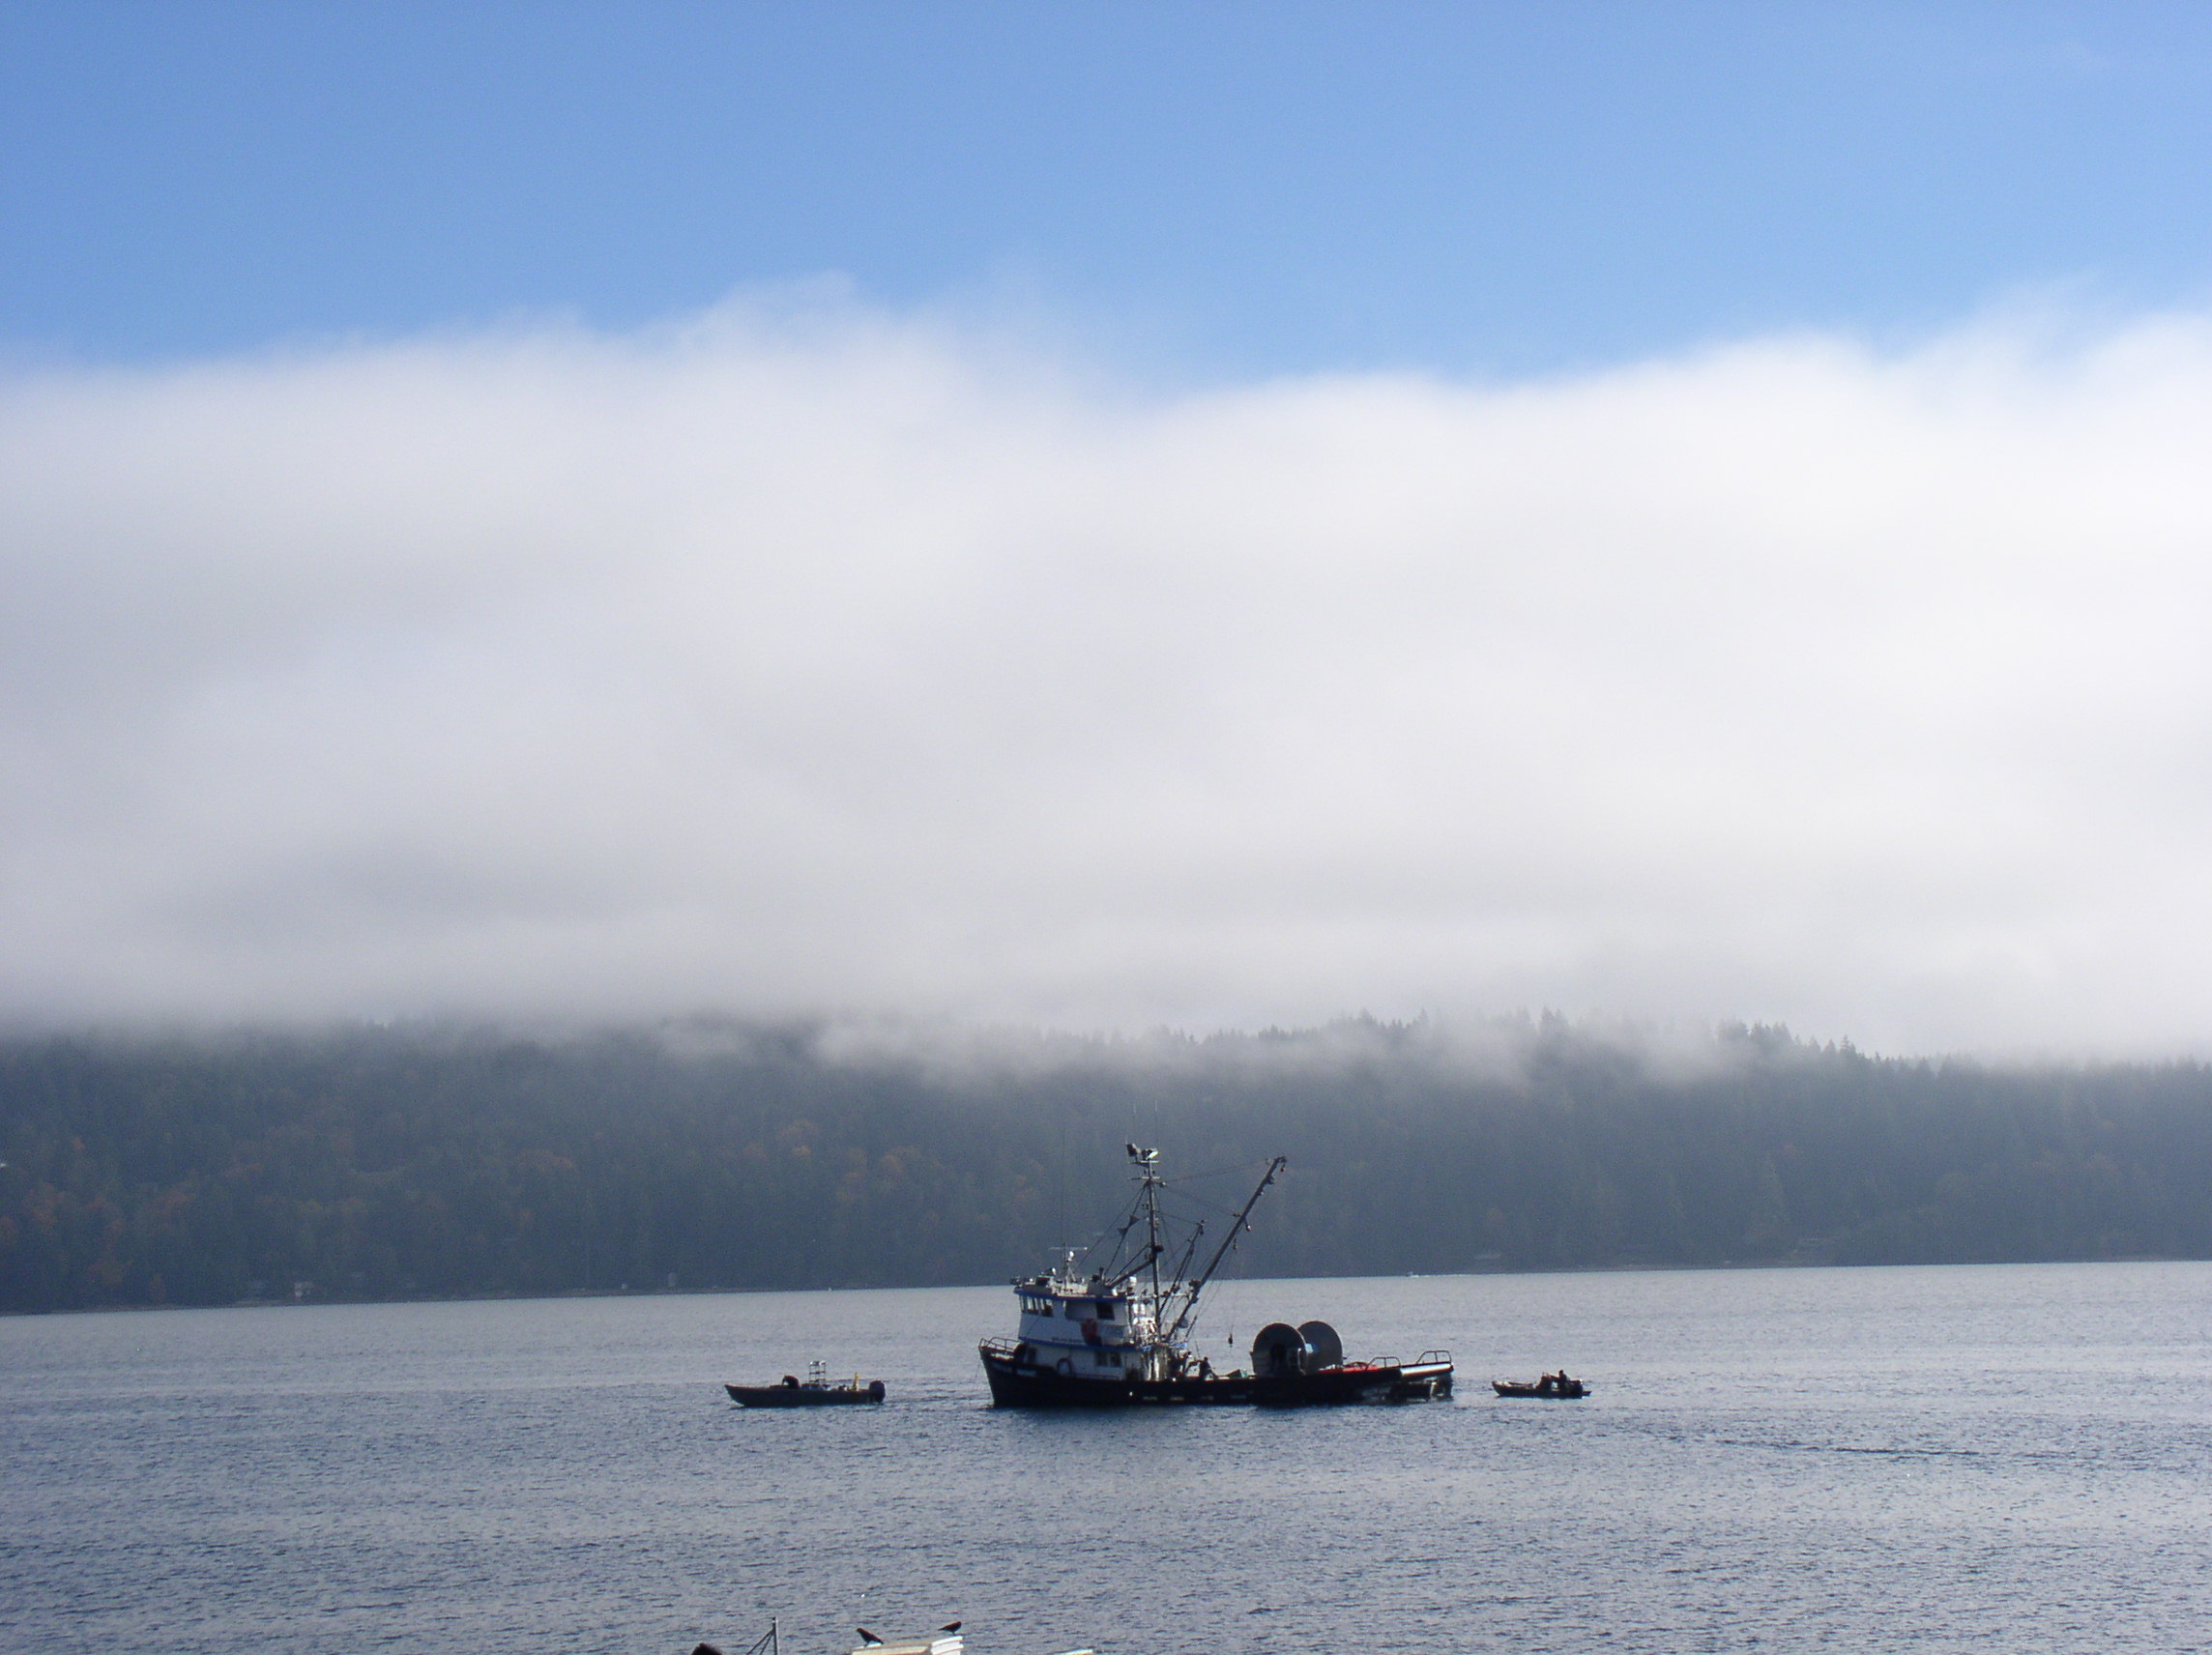 Marine layer of clouds above Hood Canal.